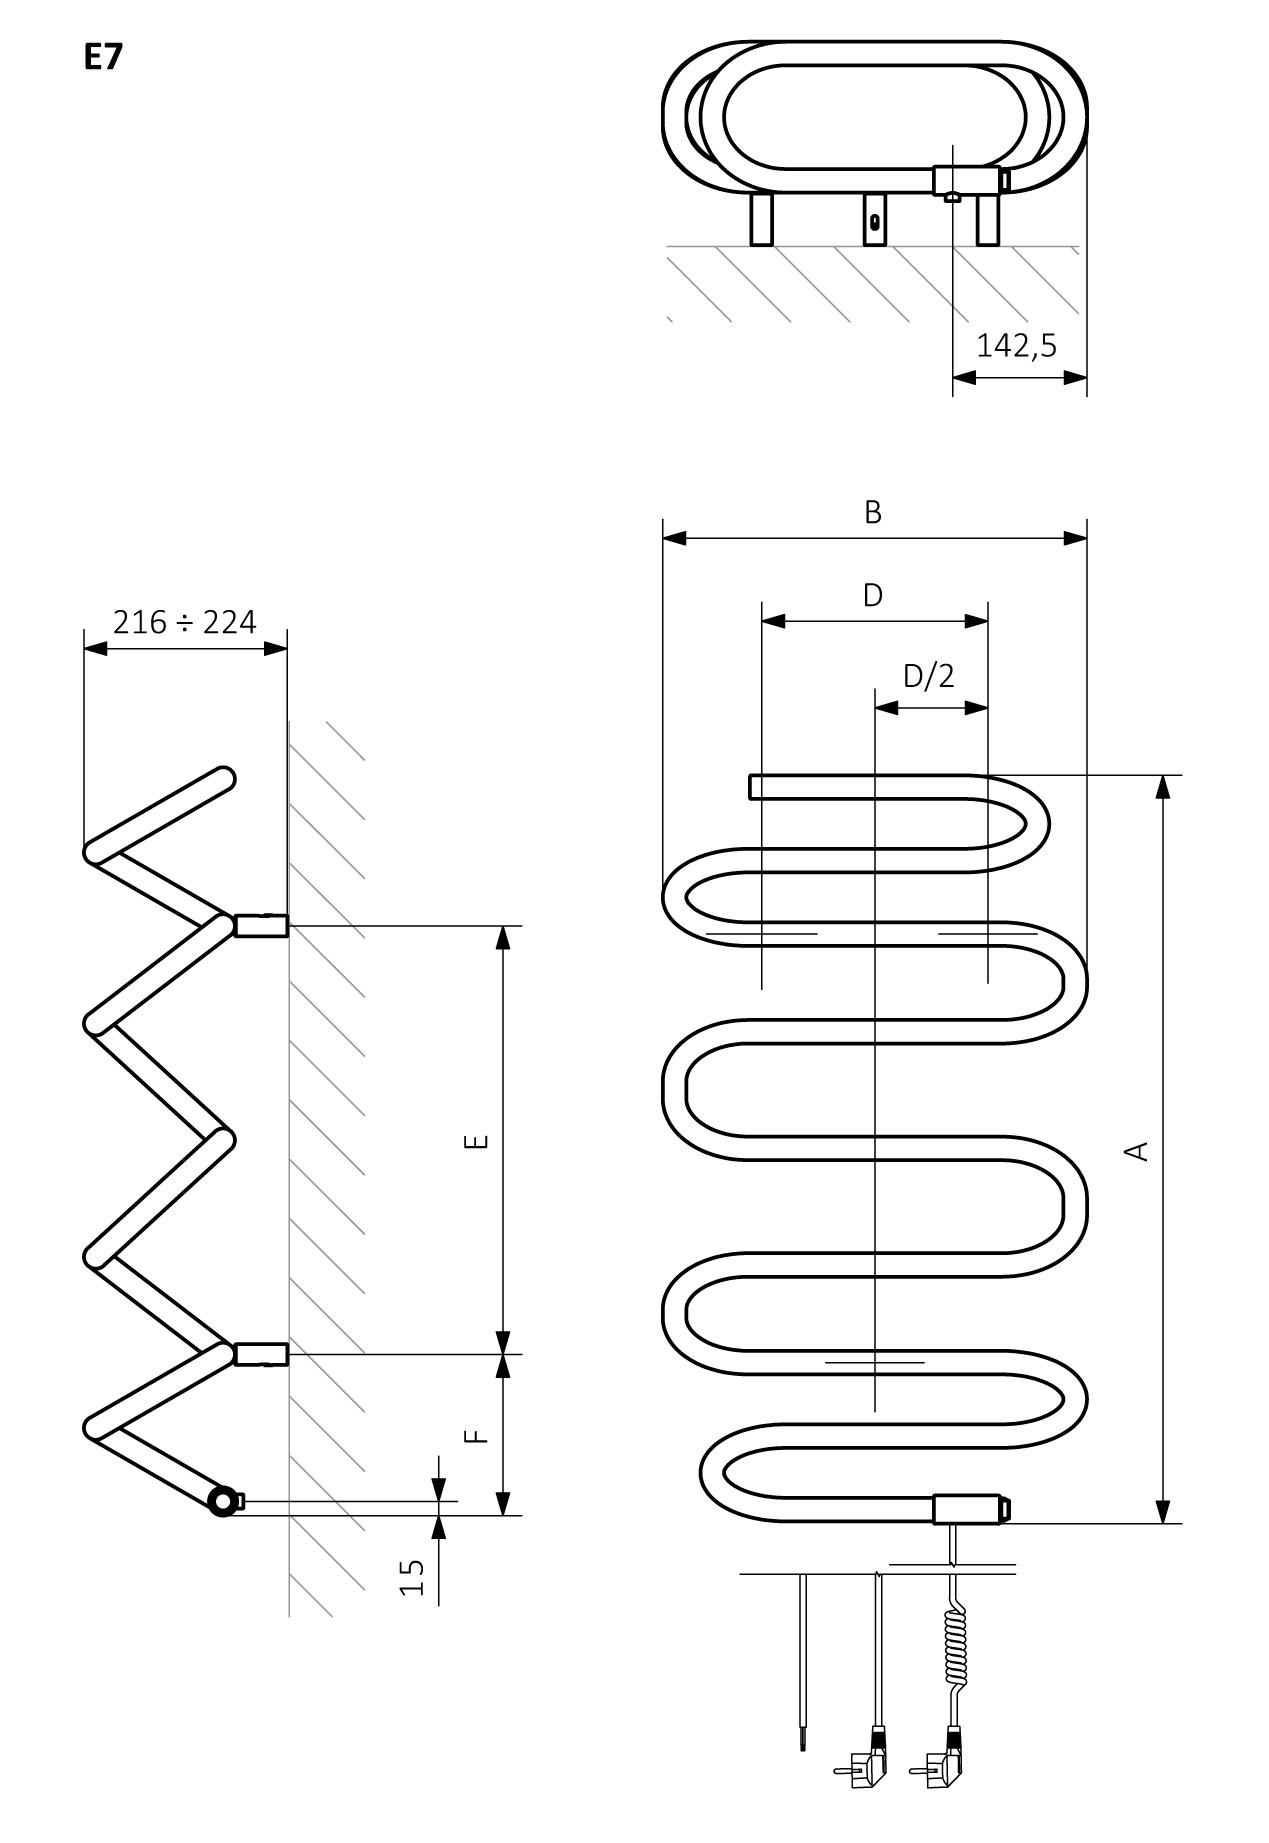 A – Height, B – Width, C1-C5 – Distance between pipe centres, D – Horizontal distance between mounting bracket centres, E – Vertical distance between mounting brackets,<br /> F – Distance between a mounting bracket and the bottom of the radiator